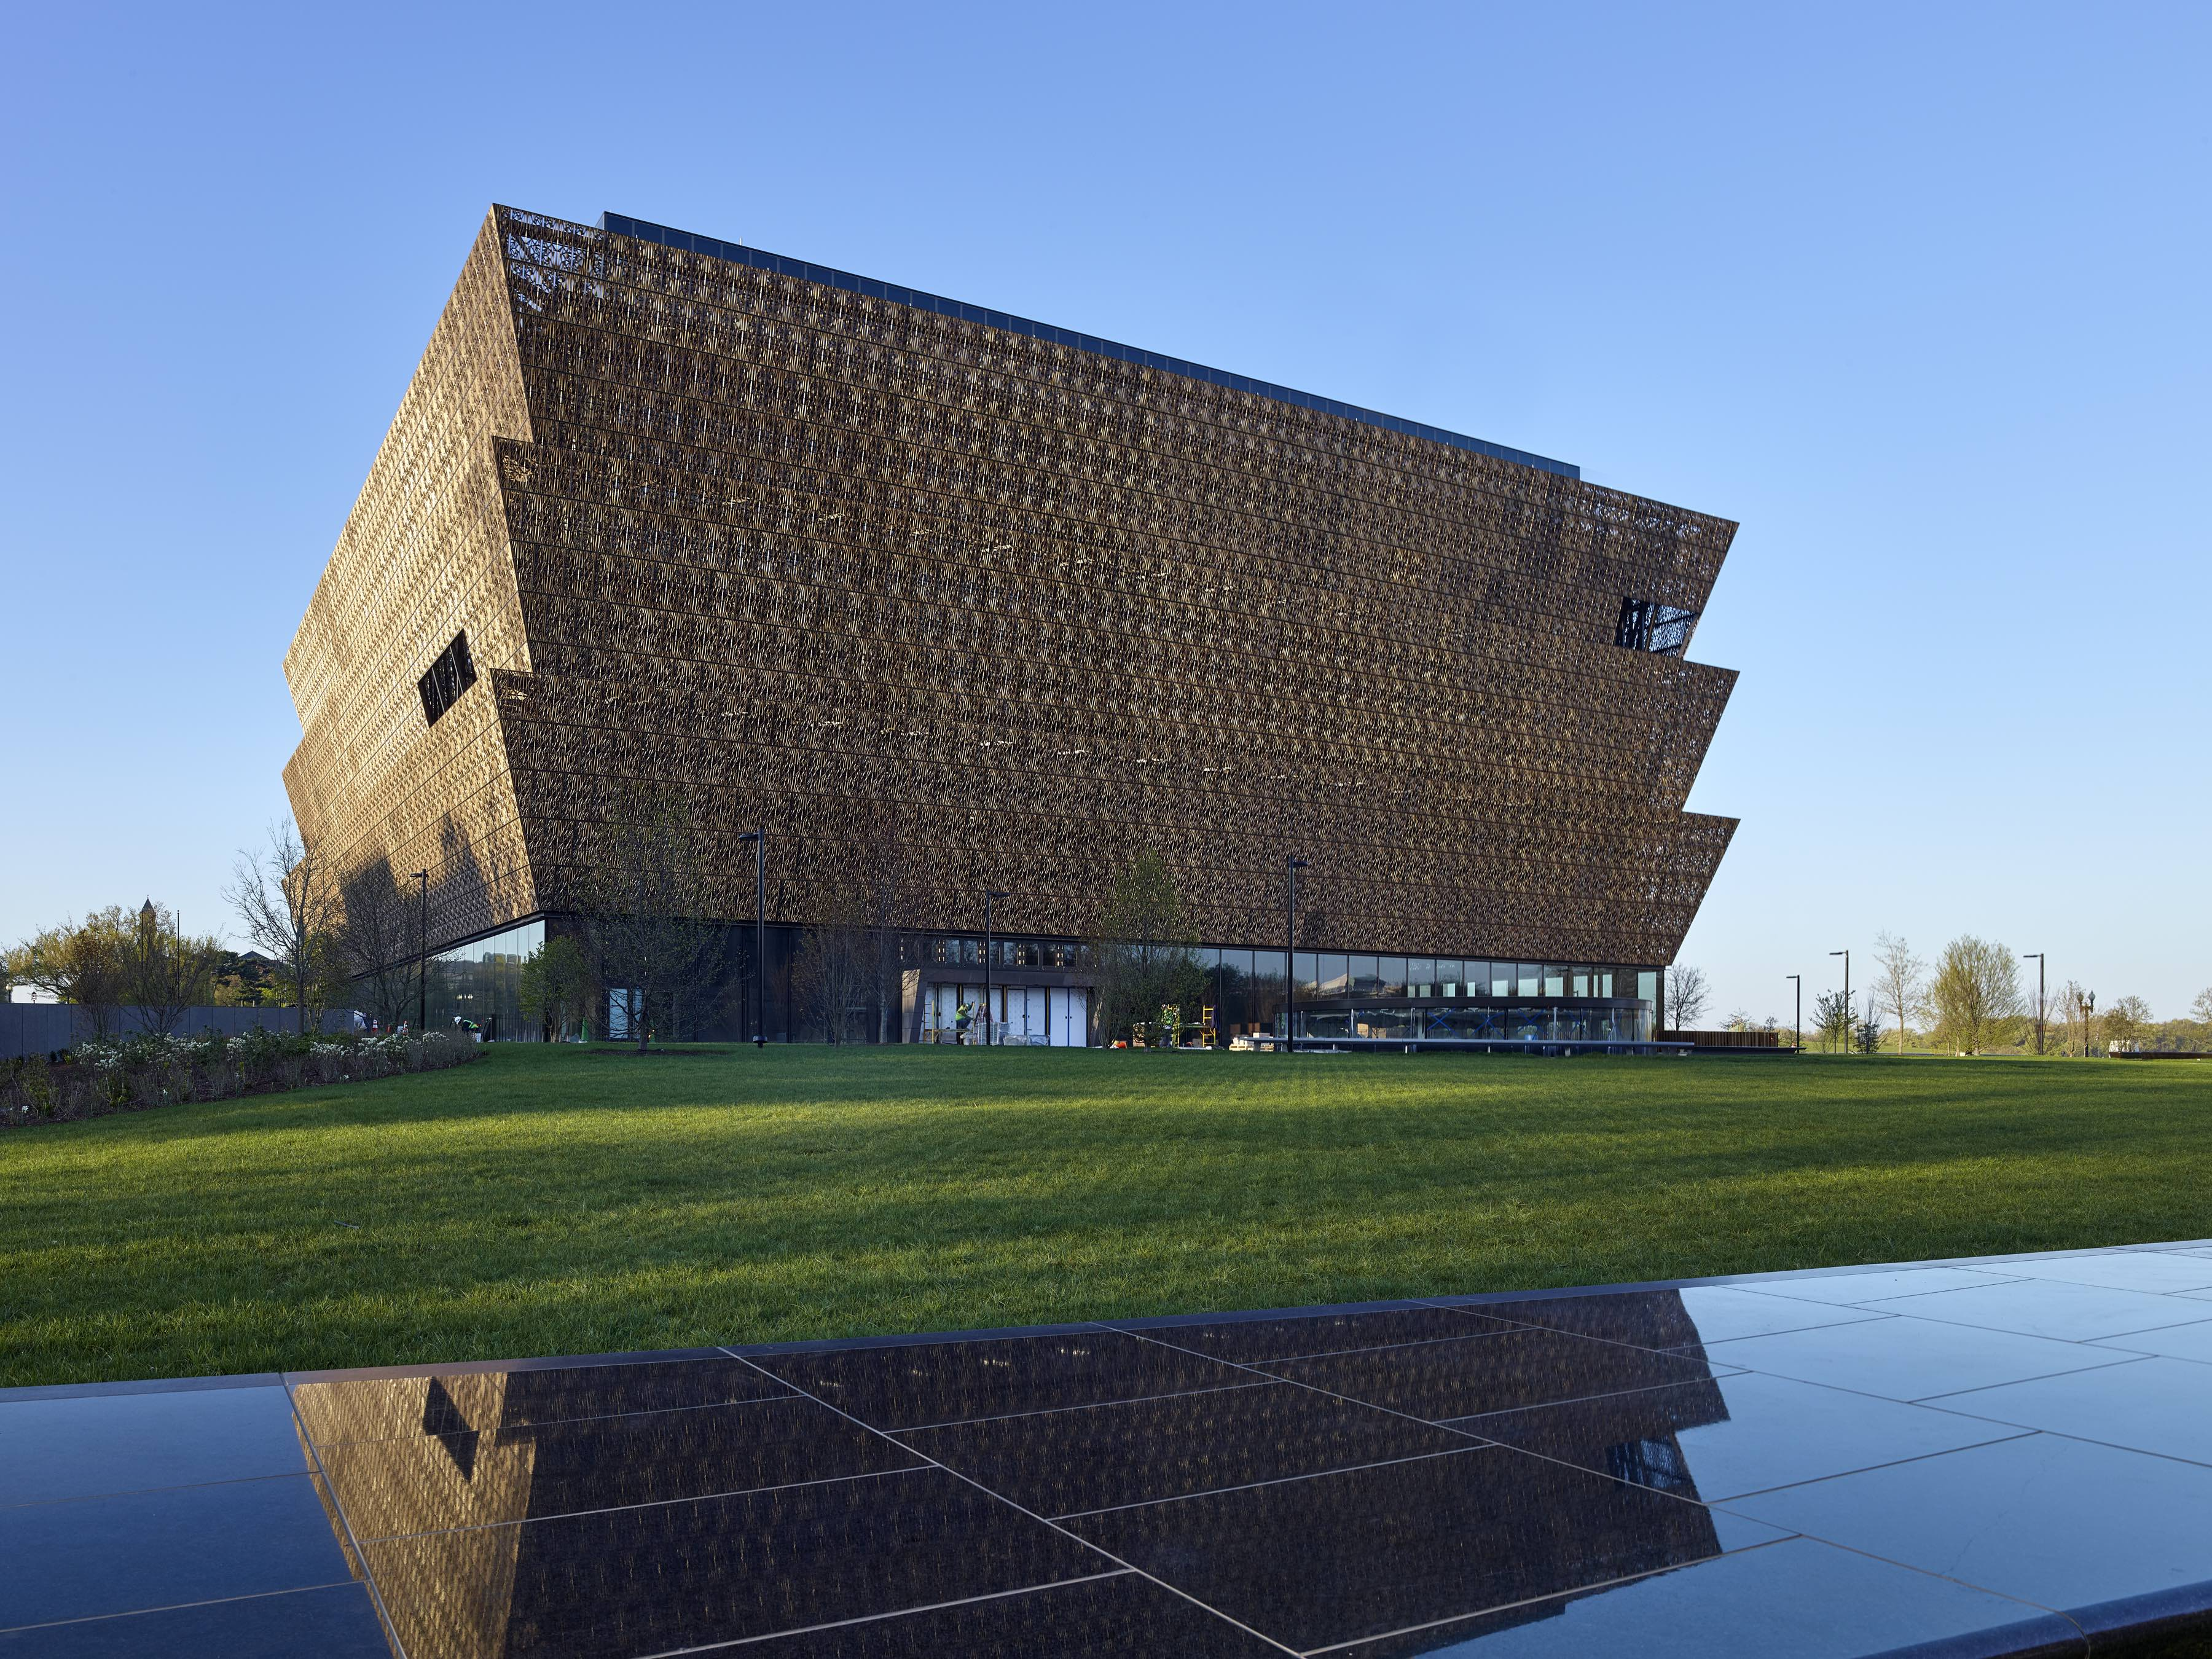 Courtesy of the National Museum of African American History and Culture, Photo by Alan Karchmer